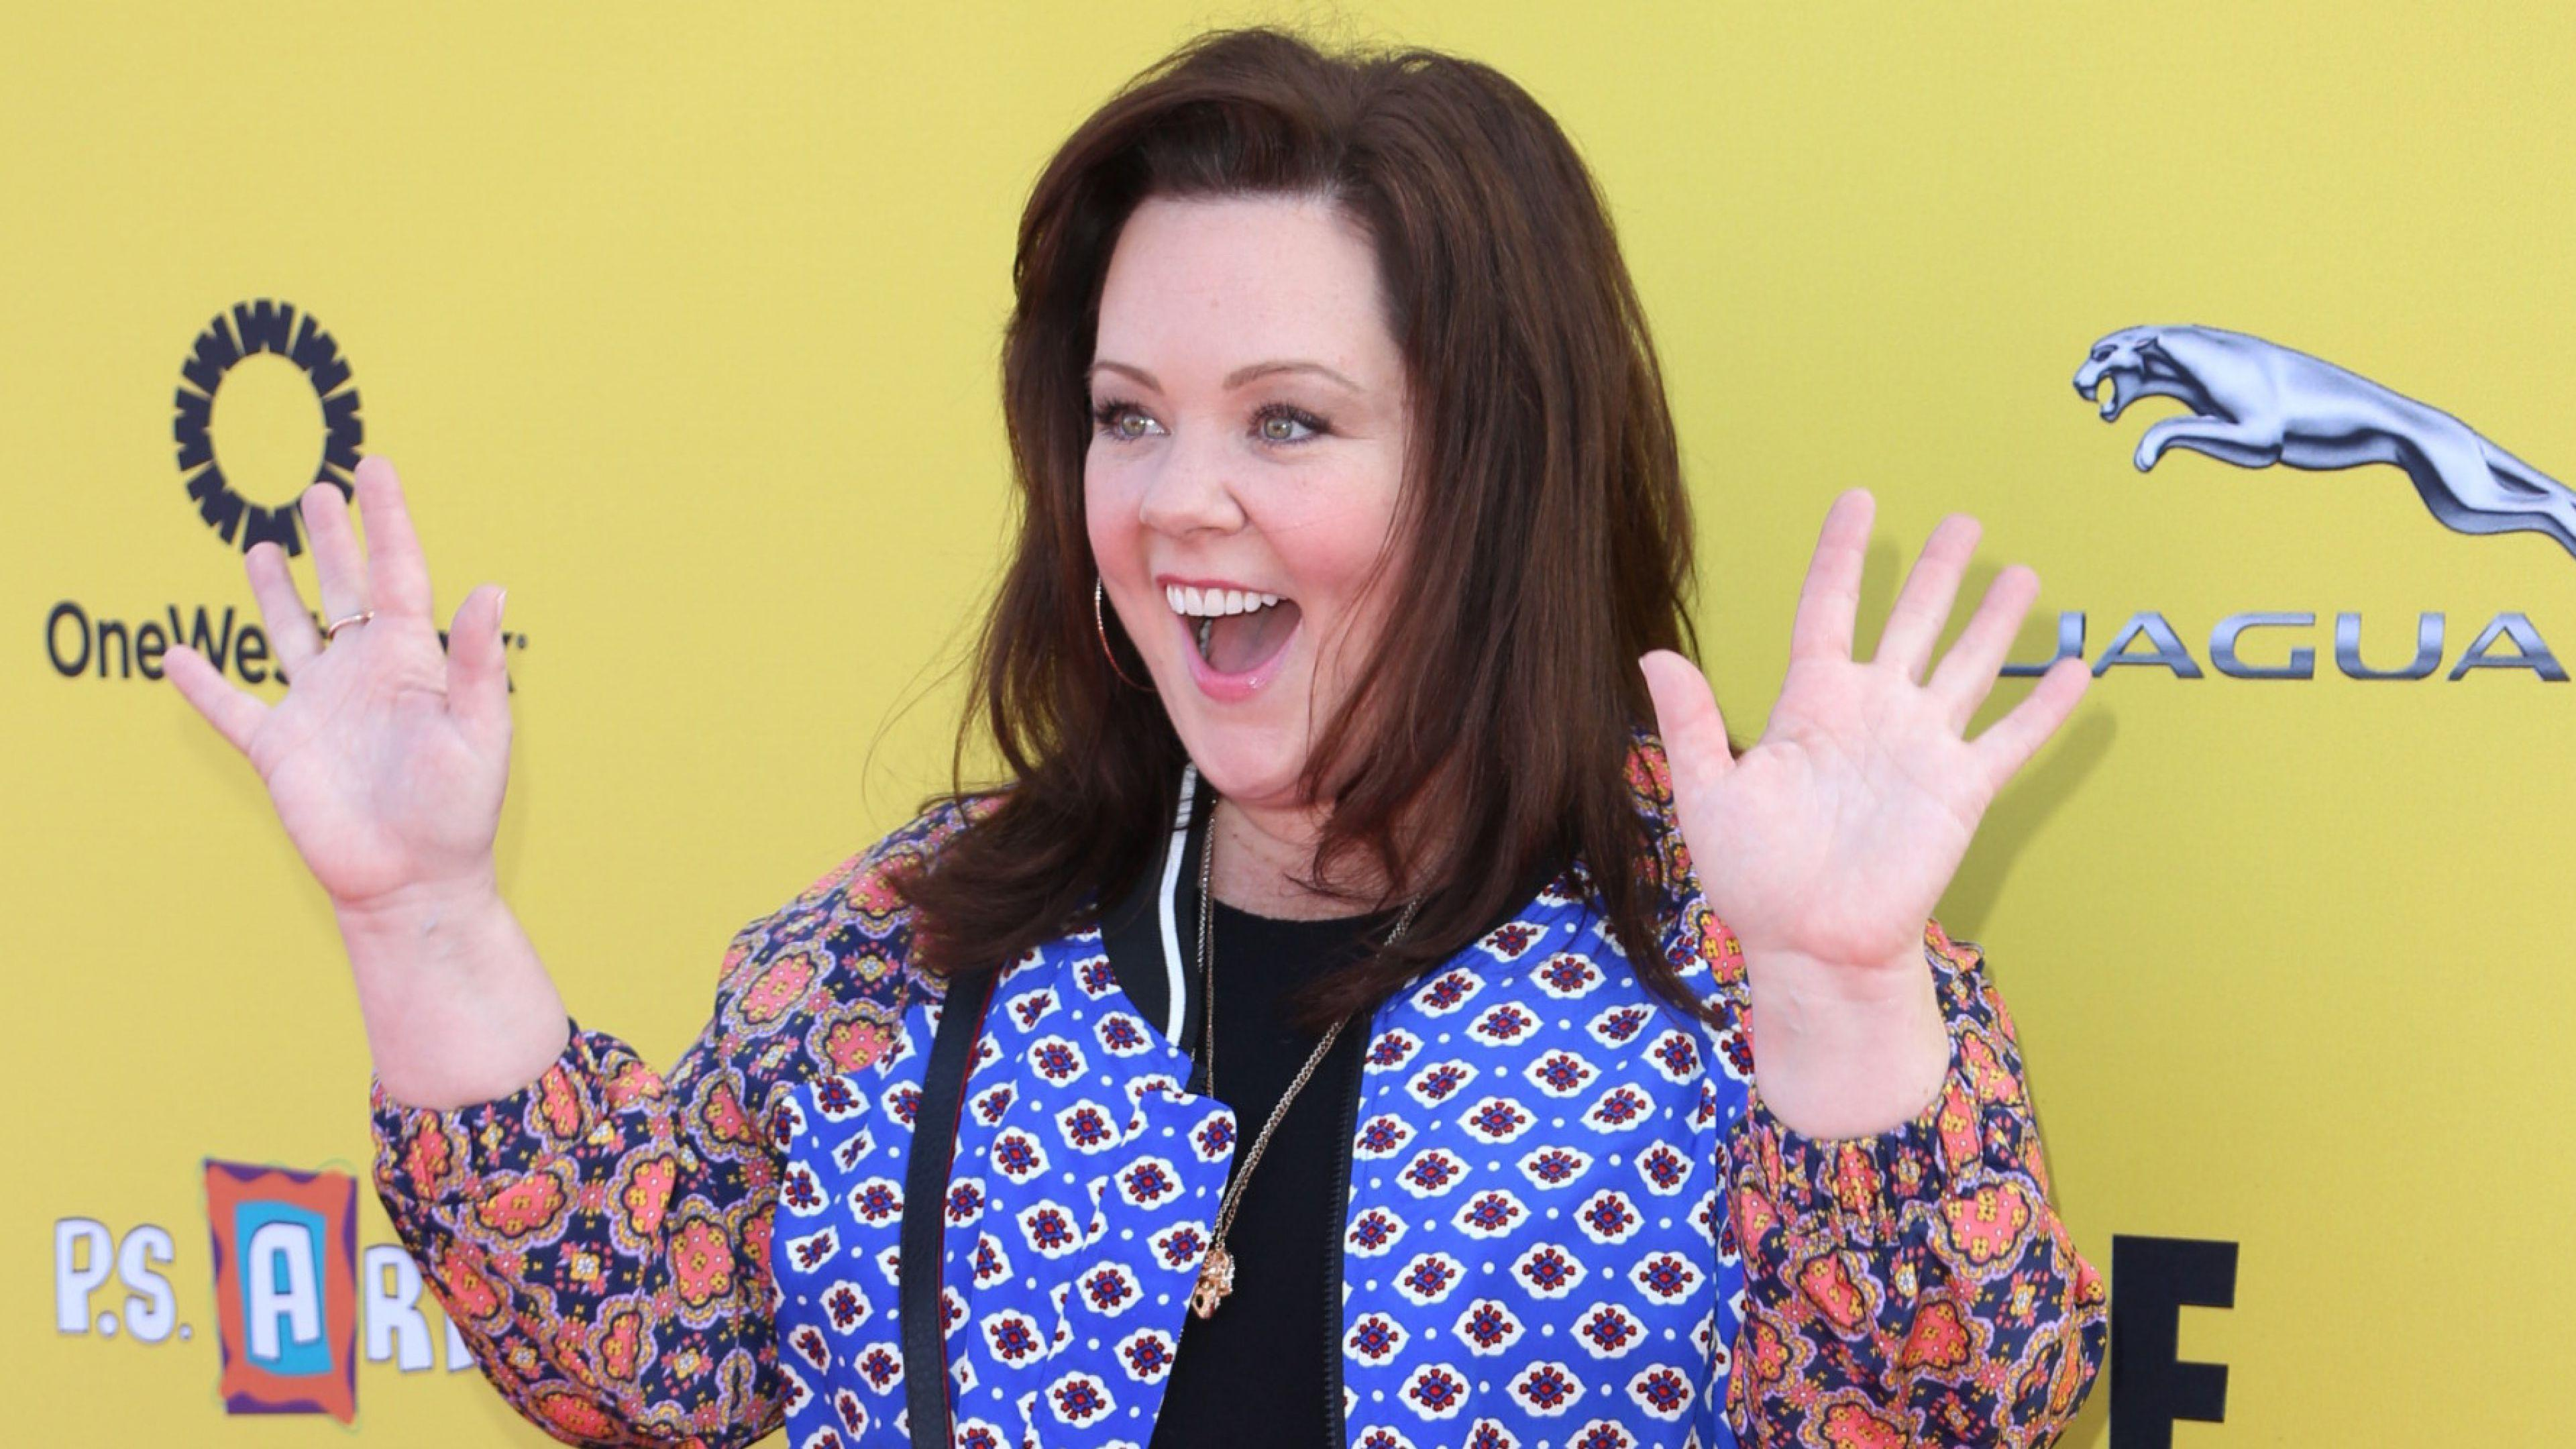 Download Wallpaper 3840x2160 Melissa mccarthy, Actress, Smile 4K ...